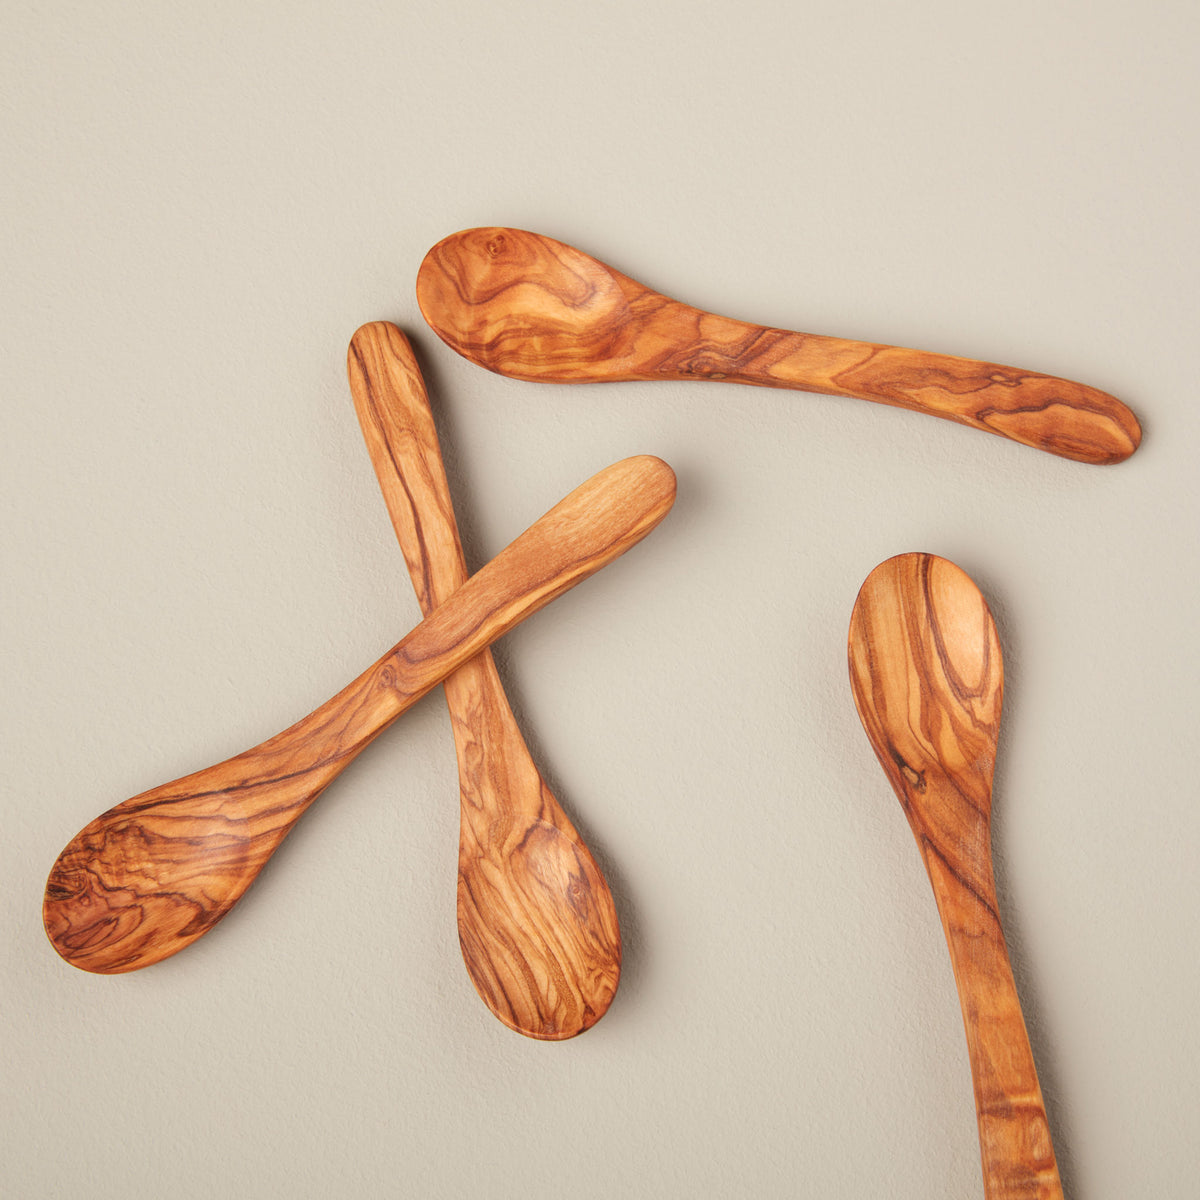 Olive Wood Spoons, Small Set of 4